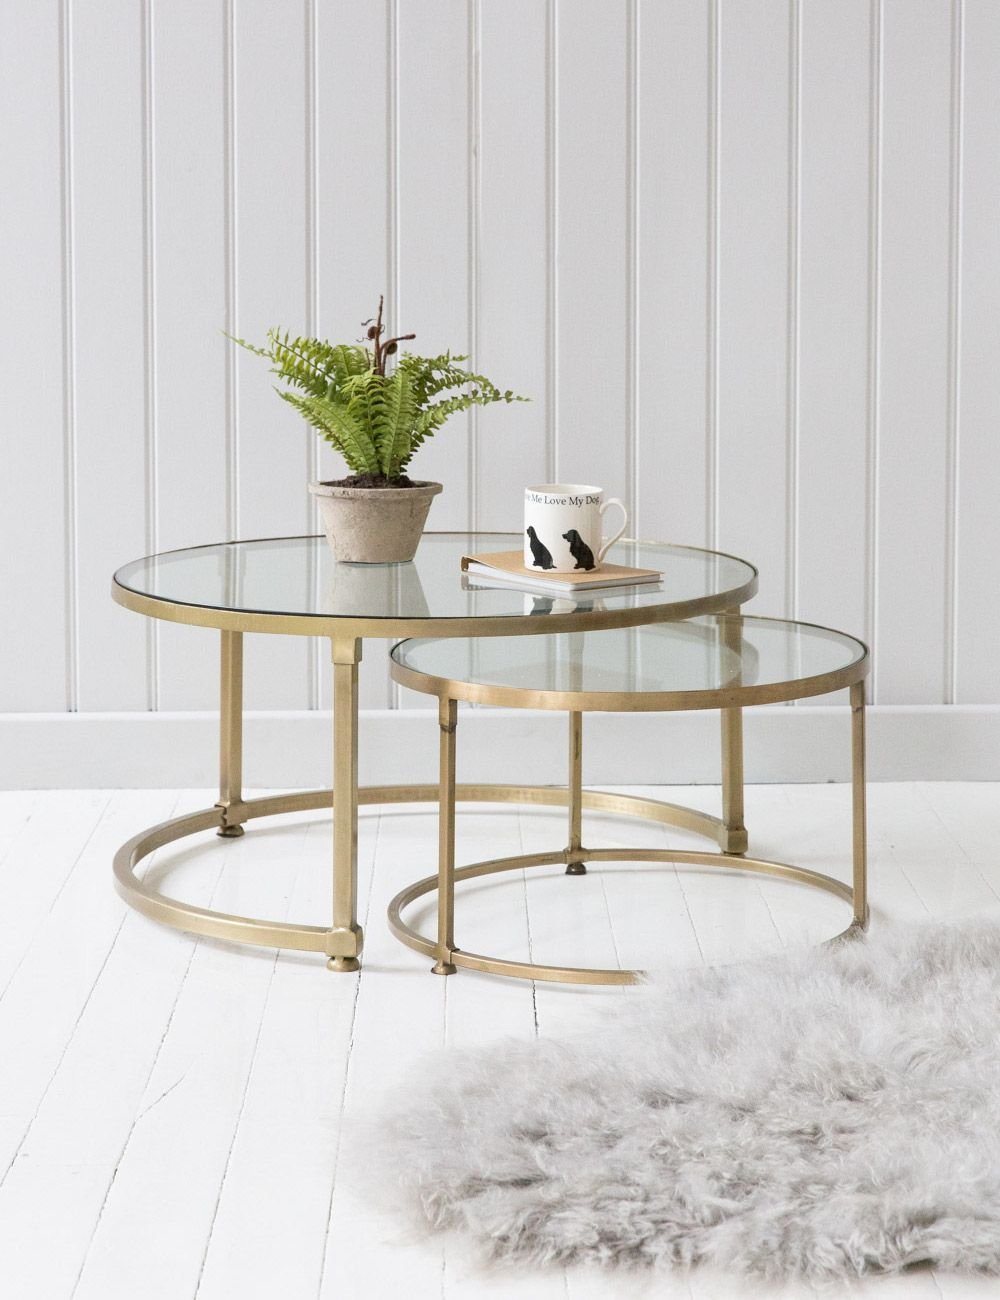 coco nesting round glass coffee tables house decor end table stacking set more stone modern black homesense boxing day kmart furniture clearance leopold stickley keepsakes pulaski